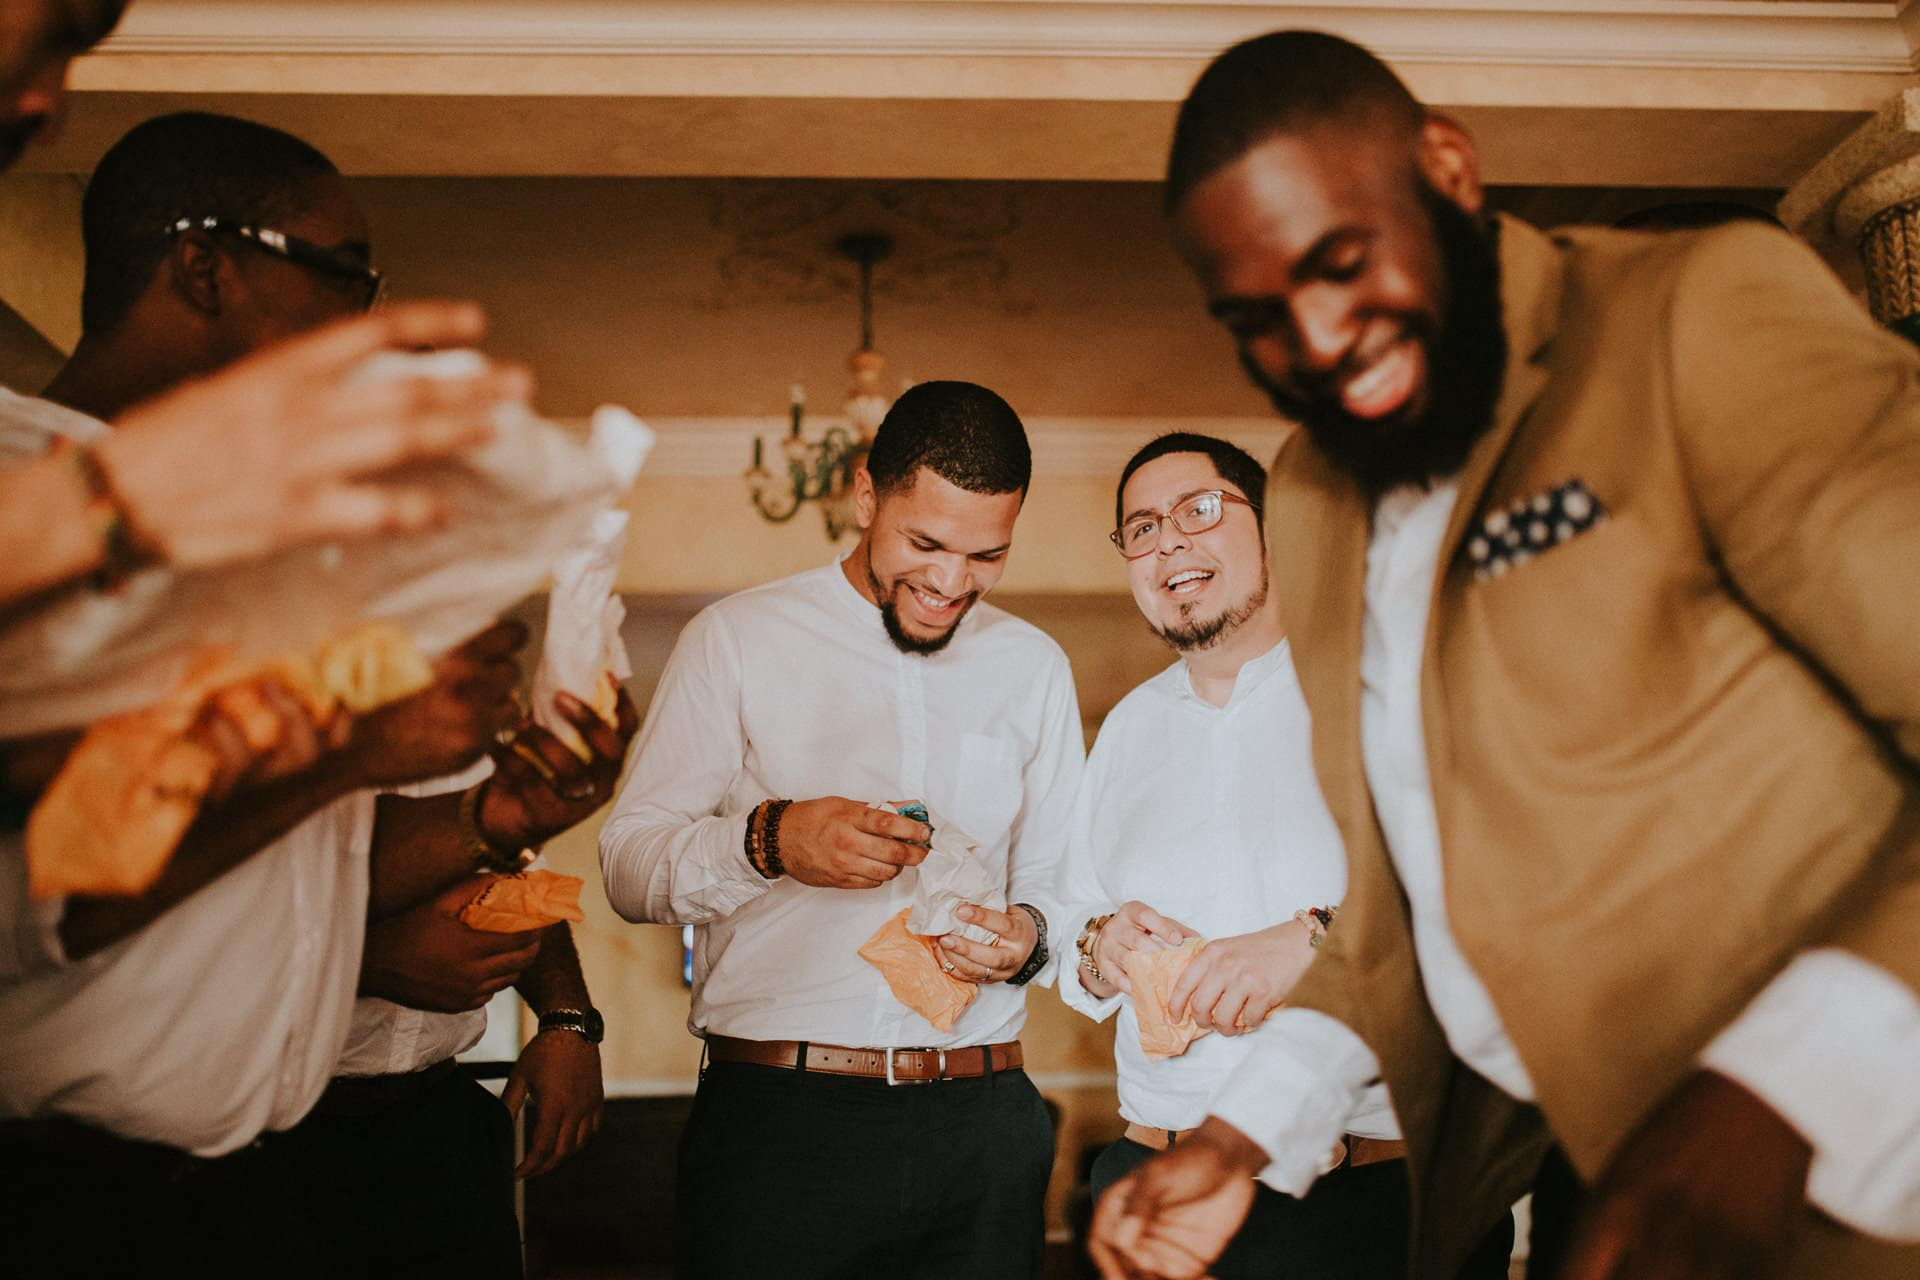 The groom is laughing with his groomsmen as they are unpacking presents.